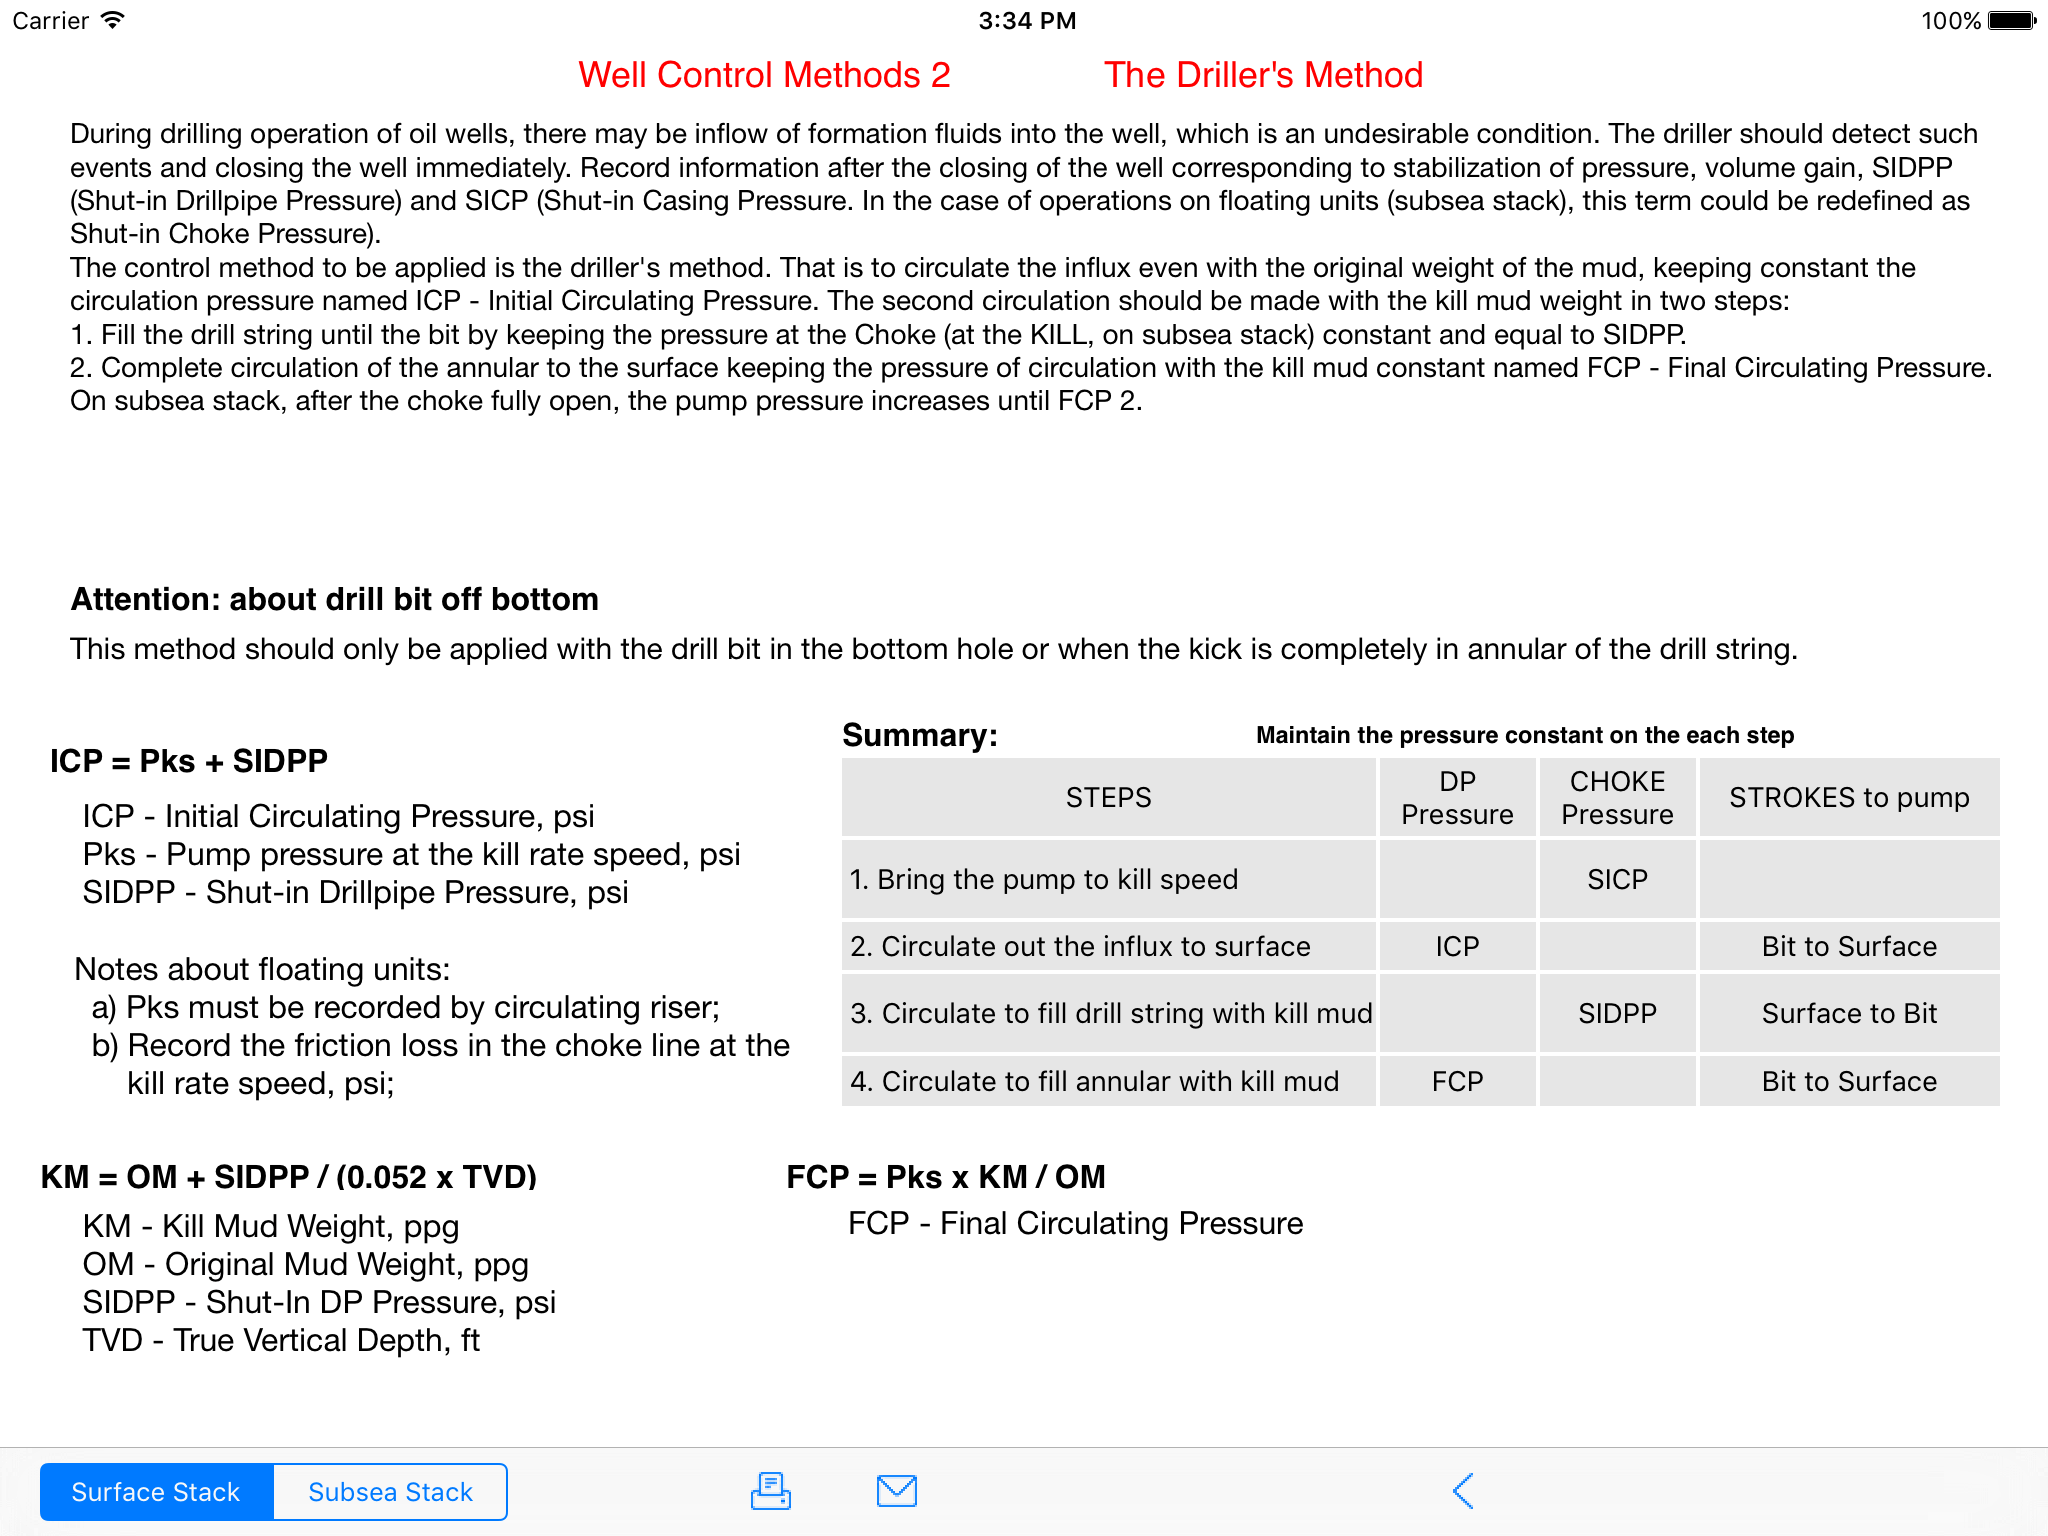 wcmethods2_10_iPad_03